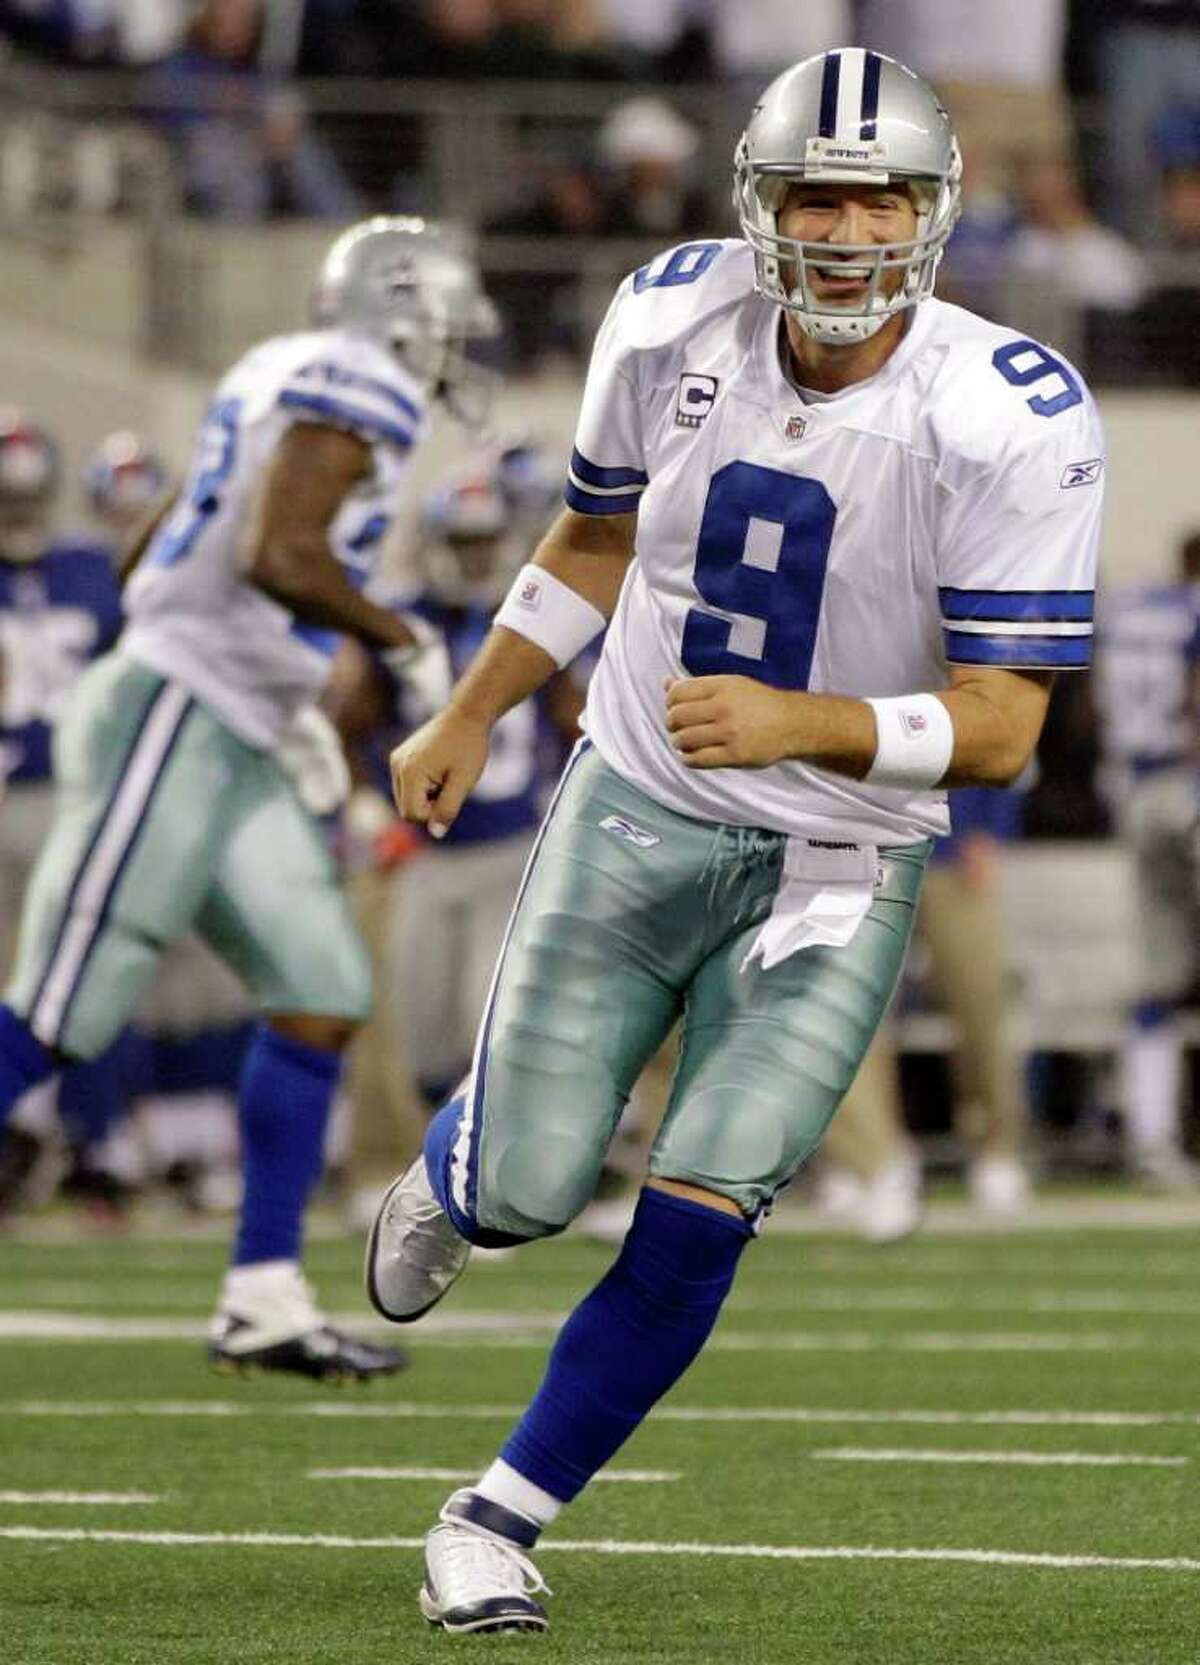 Dallas Cowboys quarterback Tony Romo heads to the sideline after passing the ball to John Phillips for a touchdown against the New York Giants during the first half of an NFL football game Sunday, Dec. 11, 2011, in Arlington, Texas.